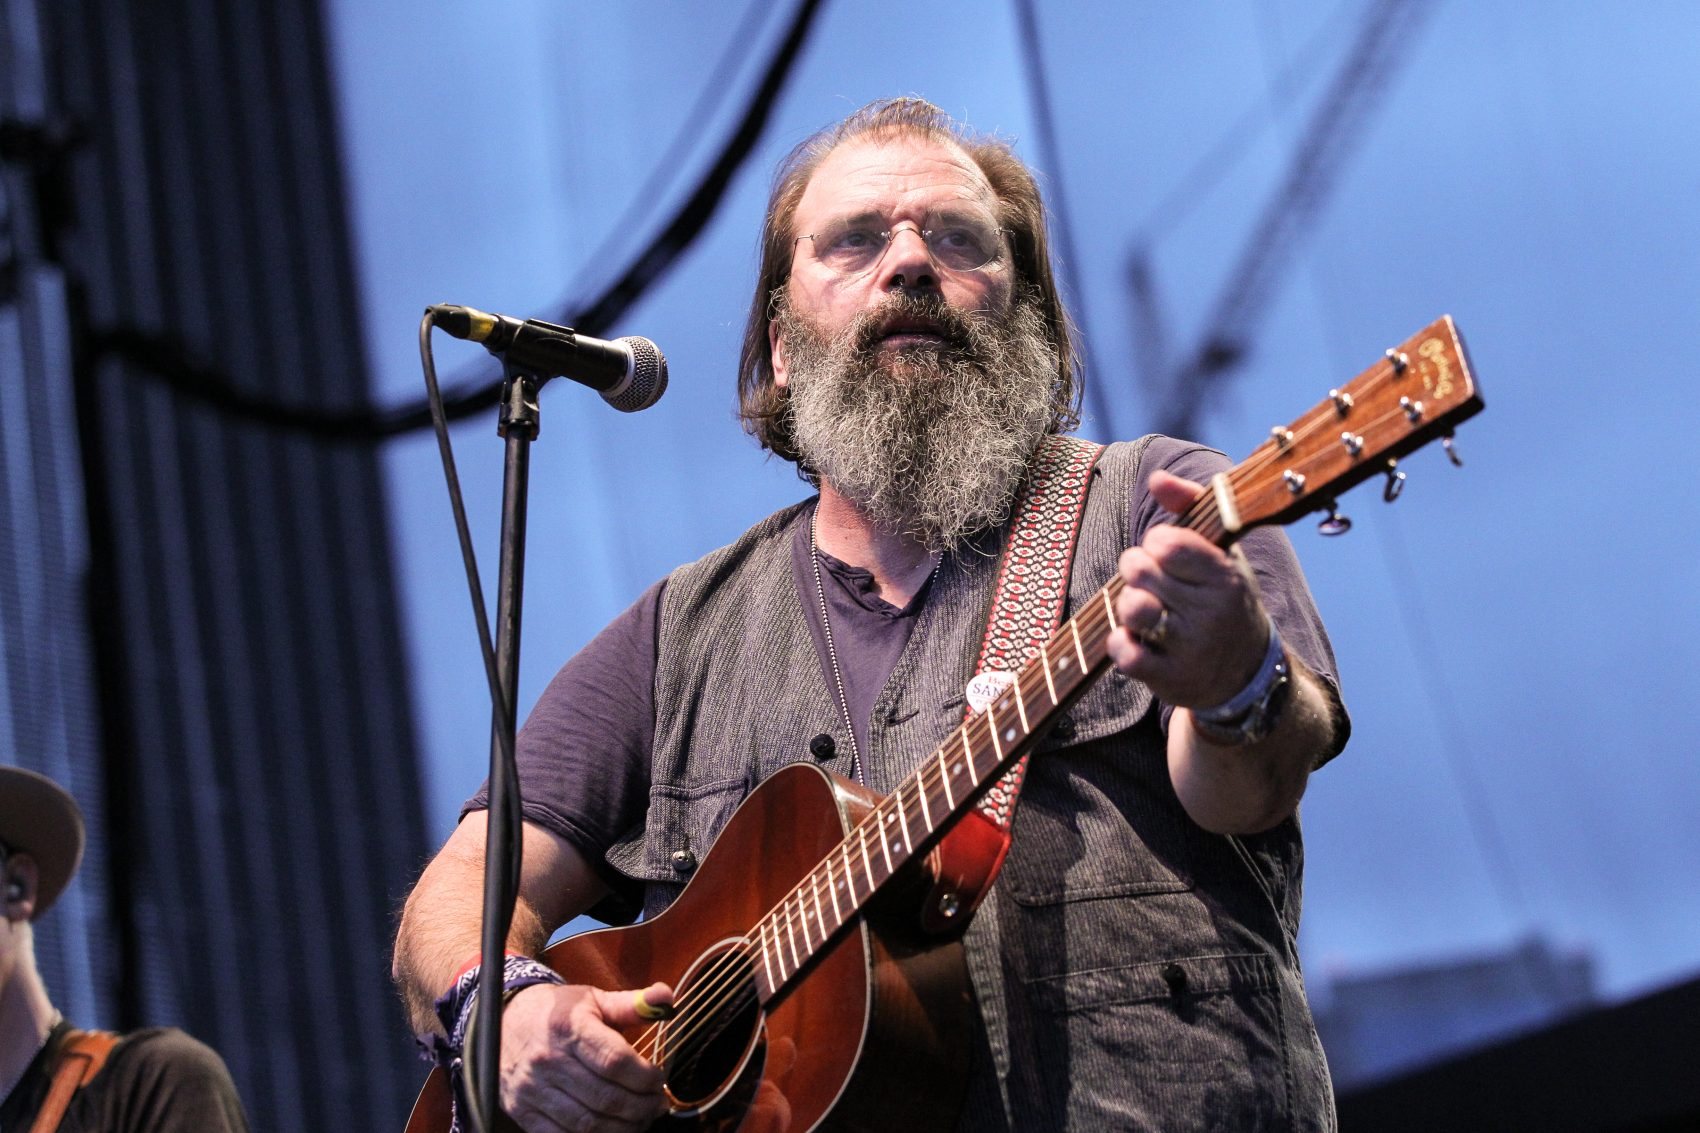 Steve Earle performs during the 16th Annual Americana Music Festival & Conference in Nashville.  (Terry Wyatt/Getty Images for Americana Music)